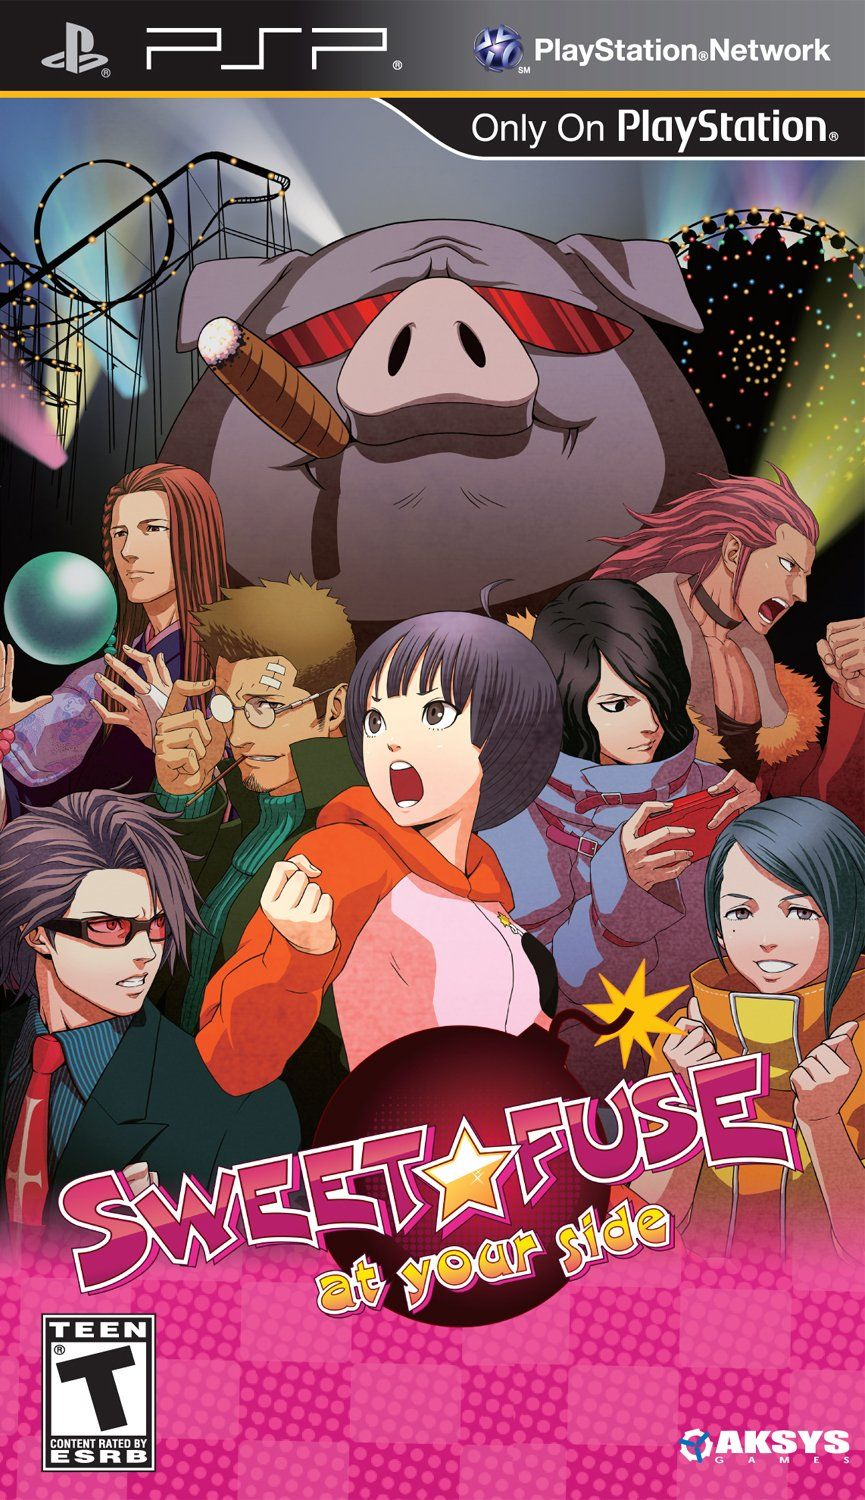 Amazon.com: Sweet Fuse: At Your Side - Sony PSP: Video Games